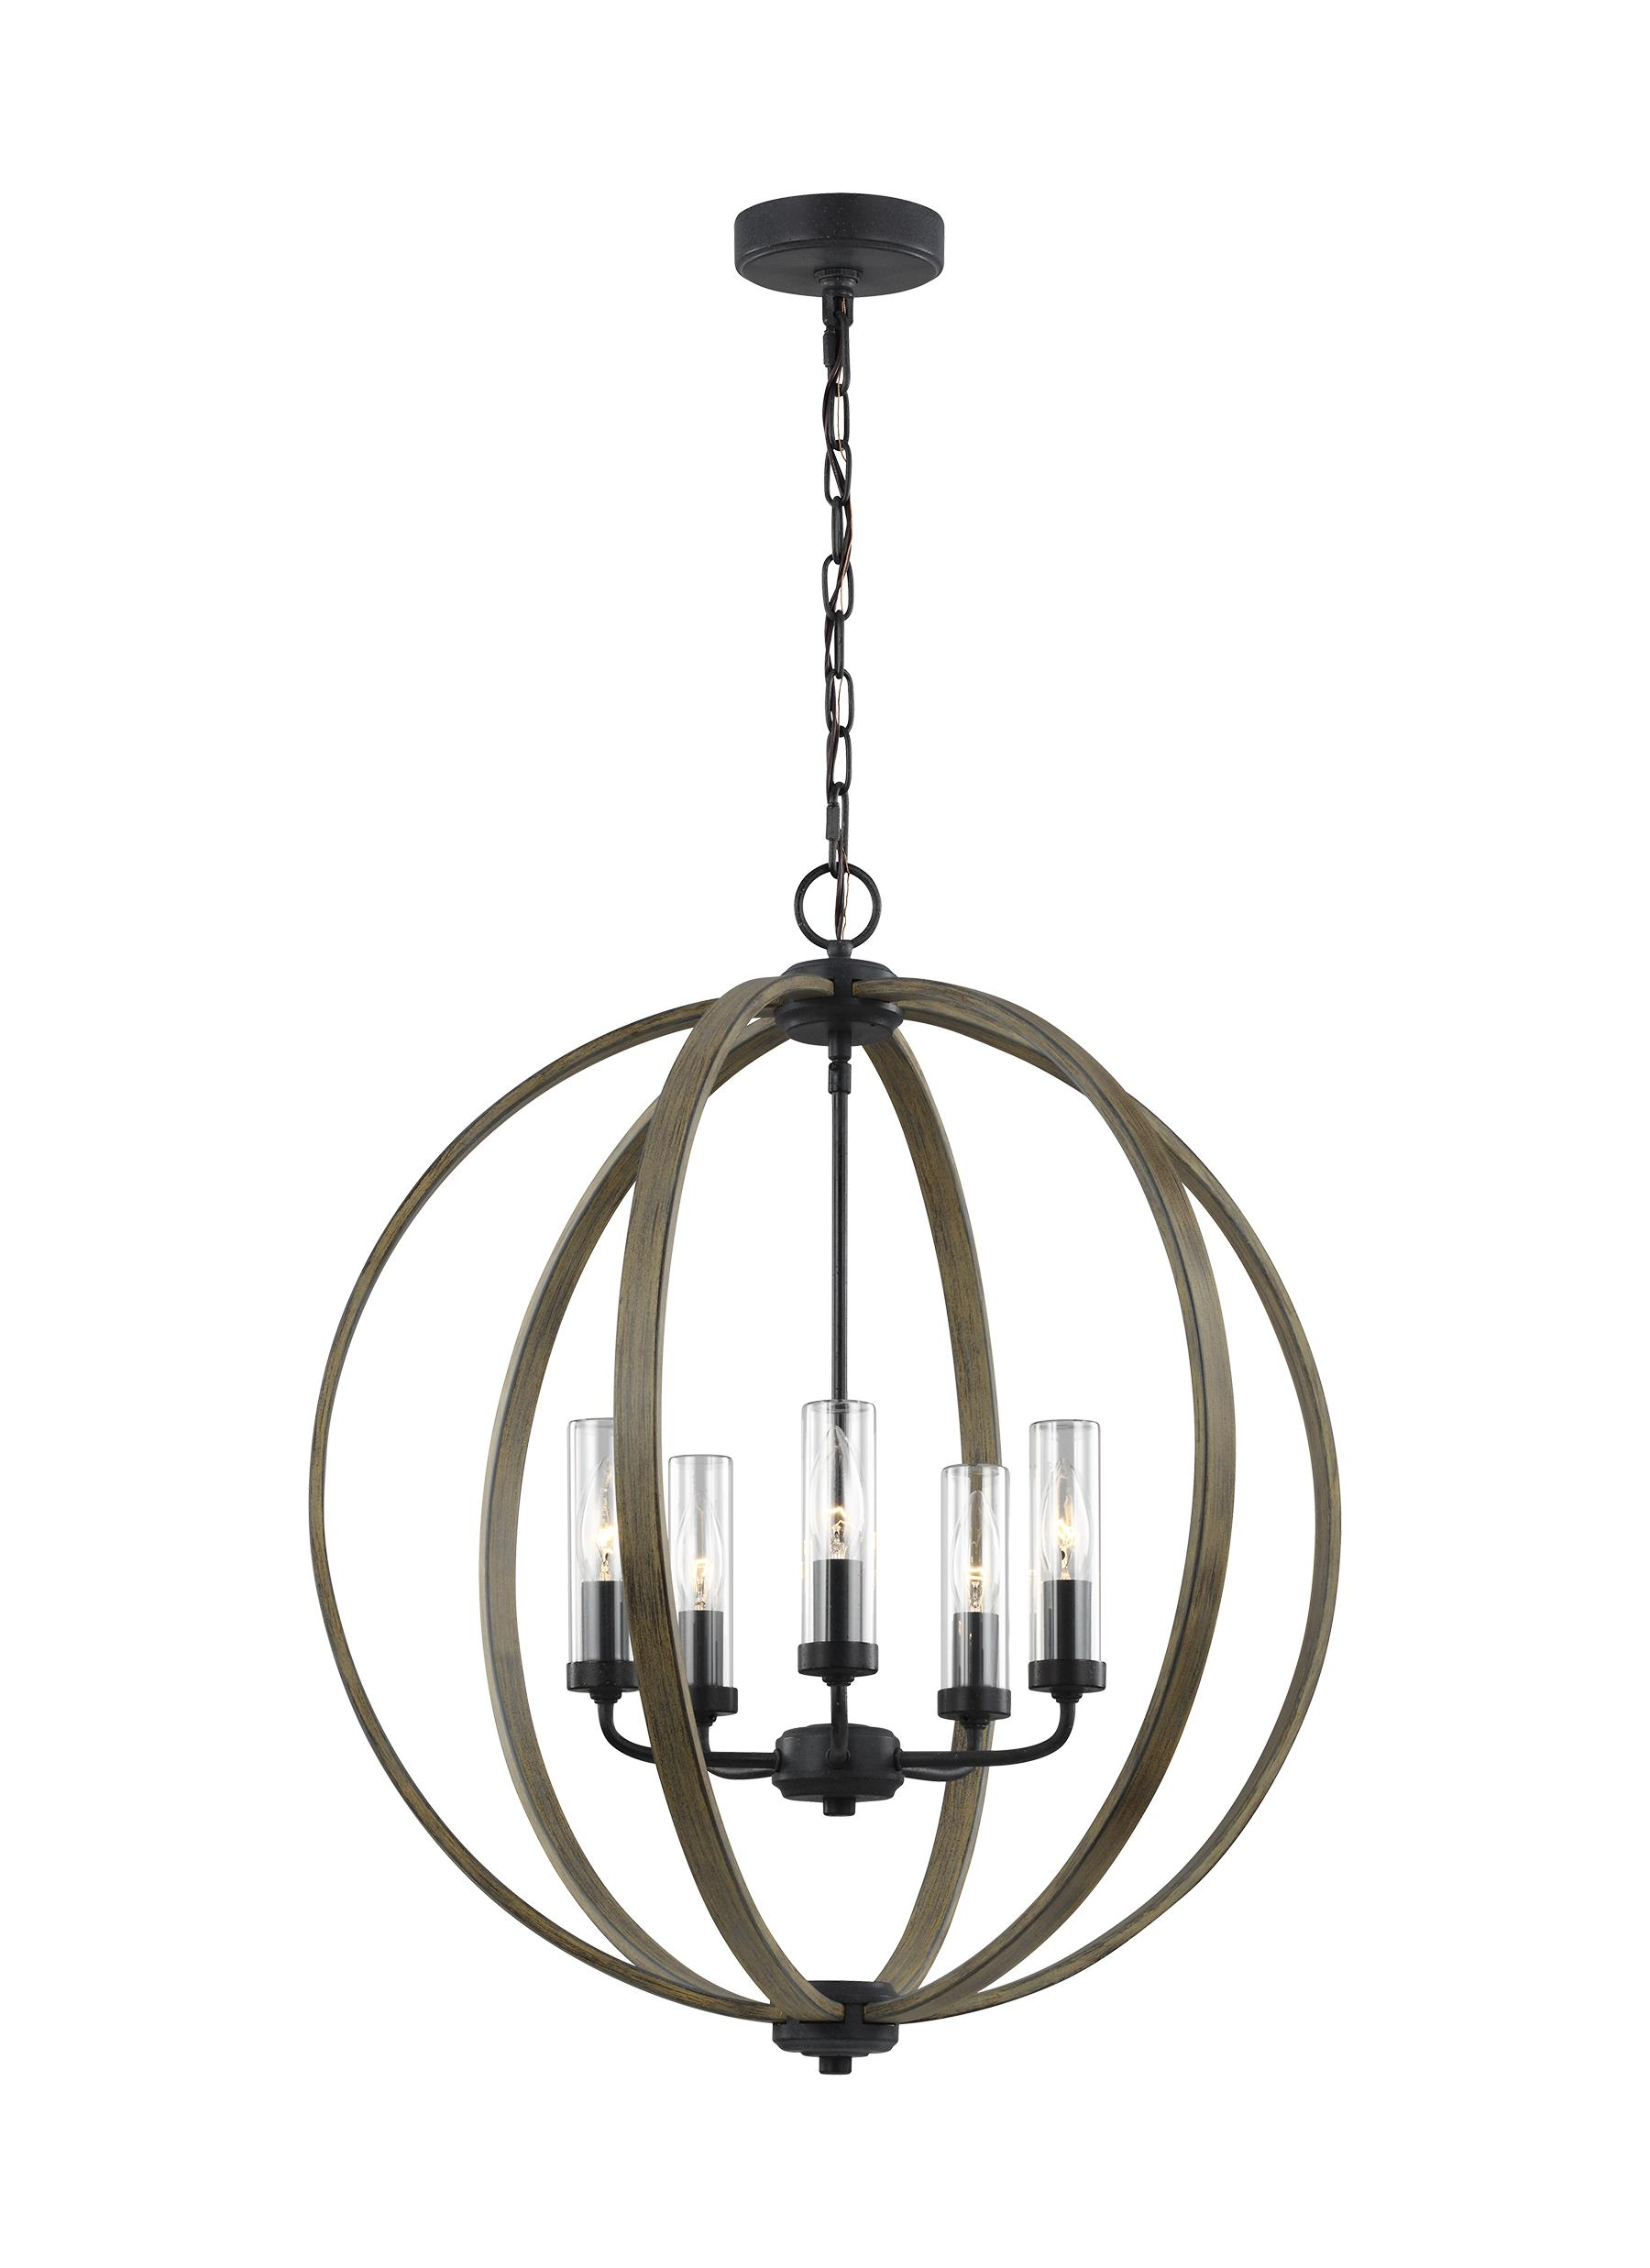 Allier lighting collection from feiss 5 light chandelier arubaitofo Gallery